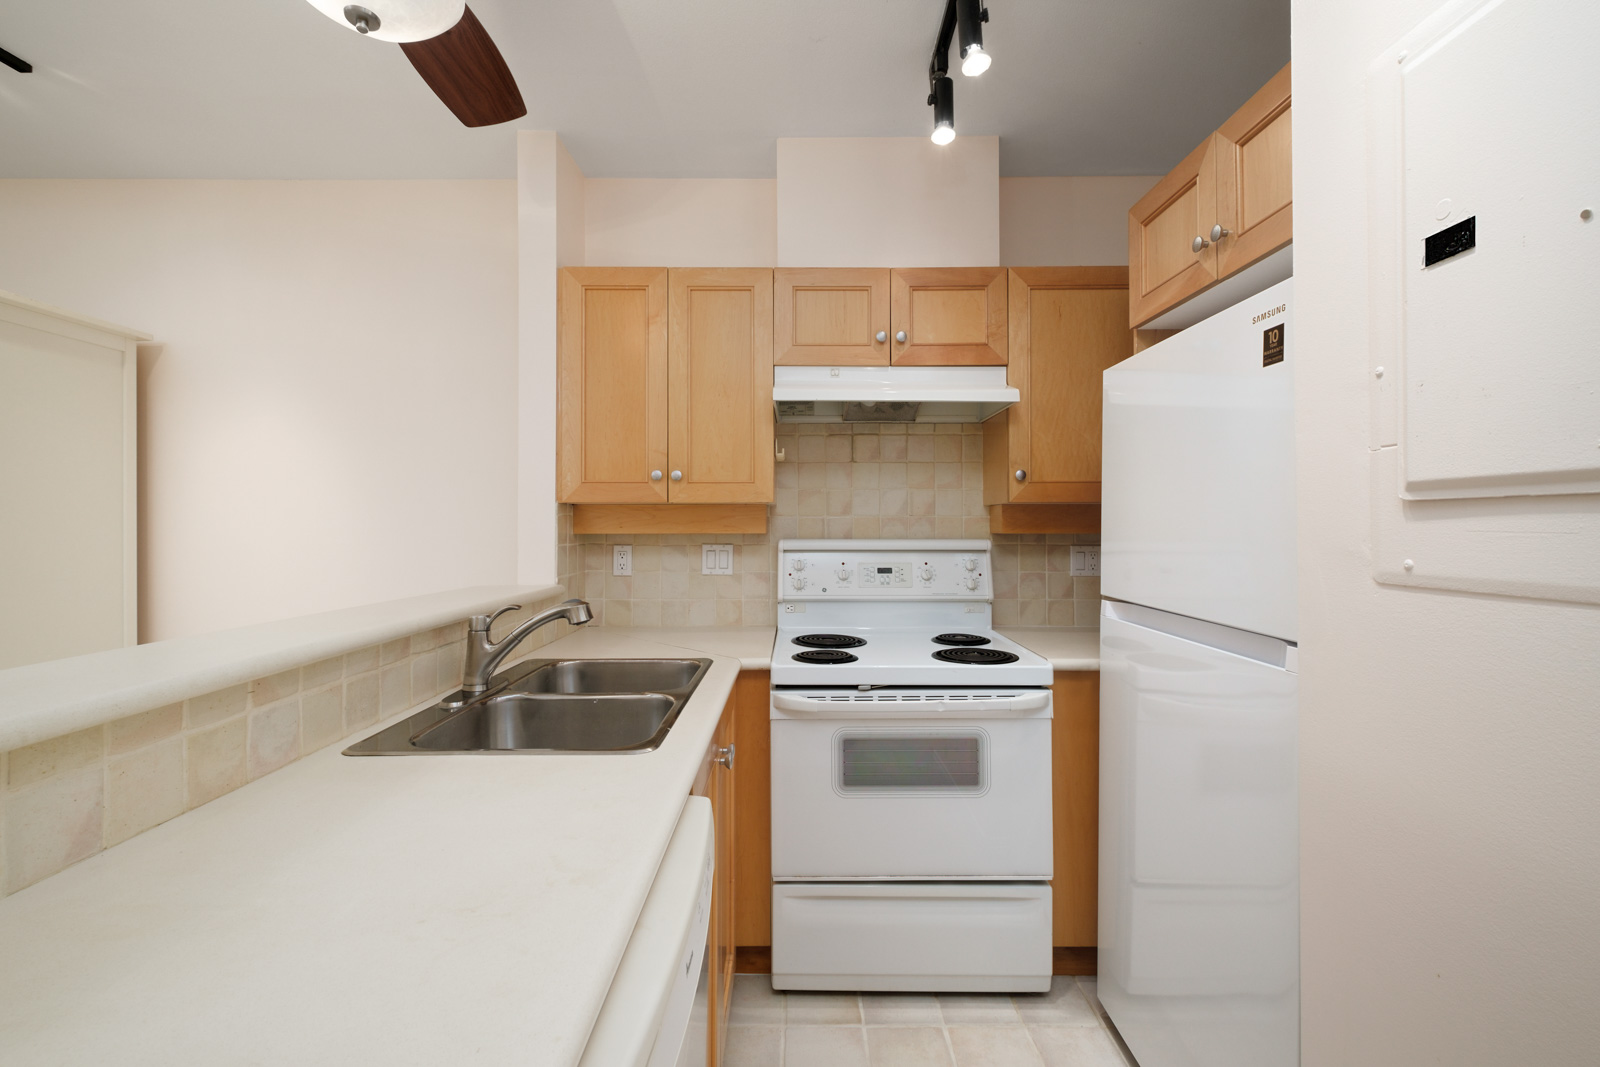 kitchen with white stove and wood cabinets in kitsilano rental studio apartment in vancouver westside